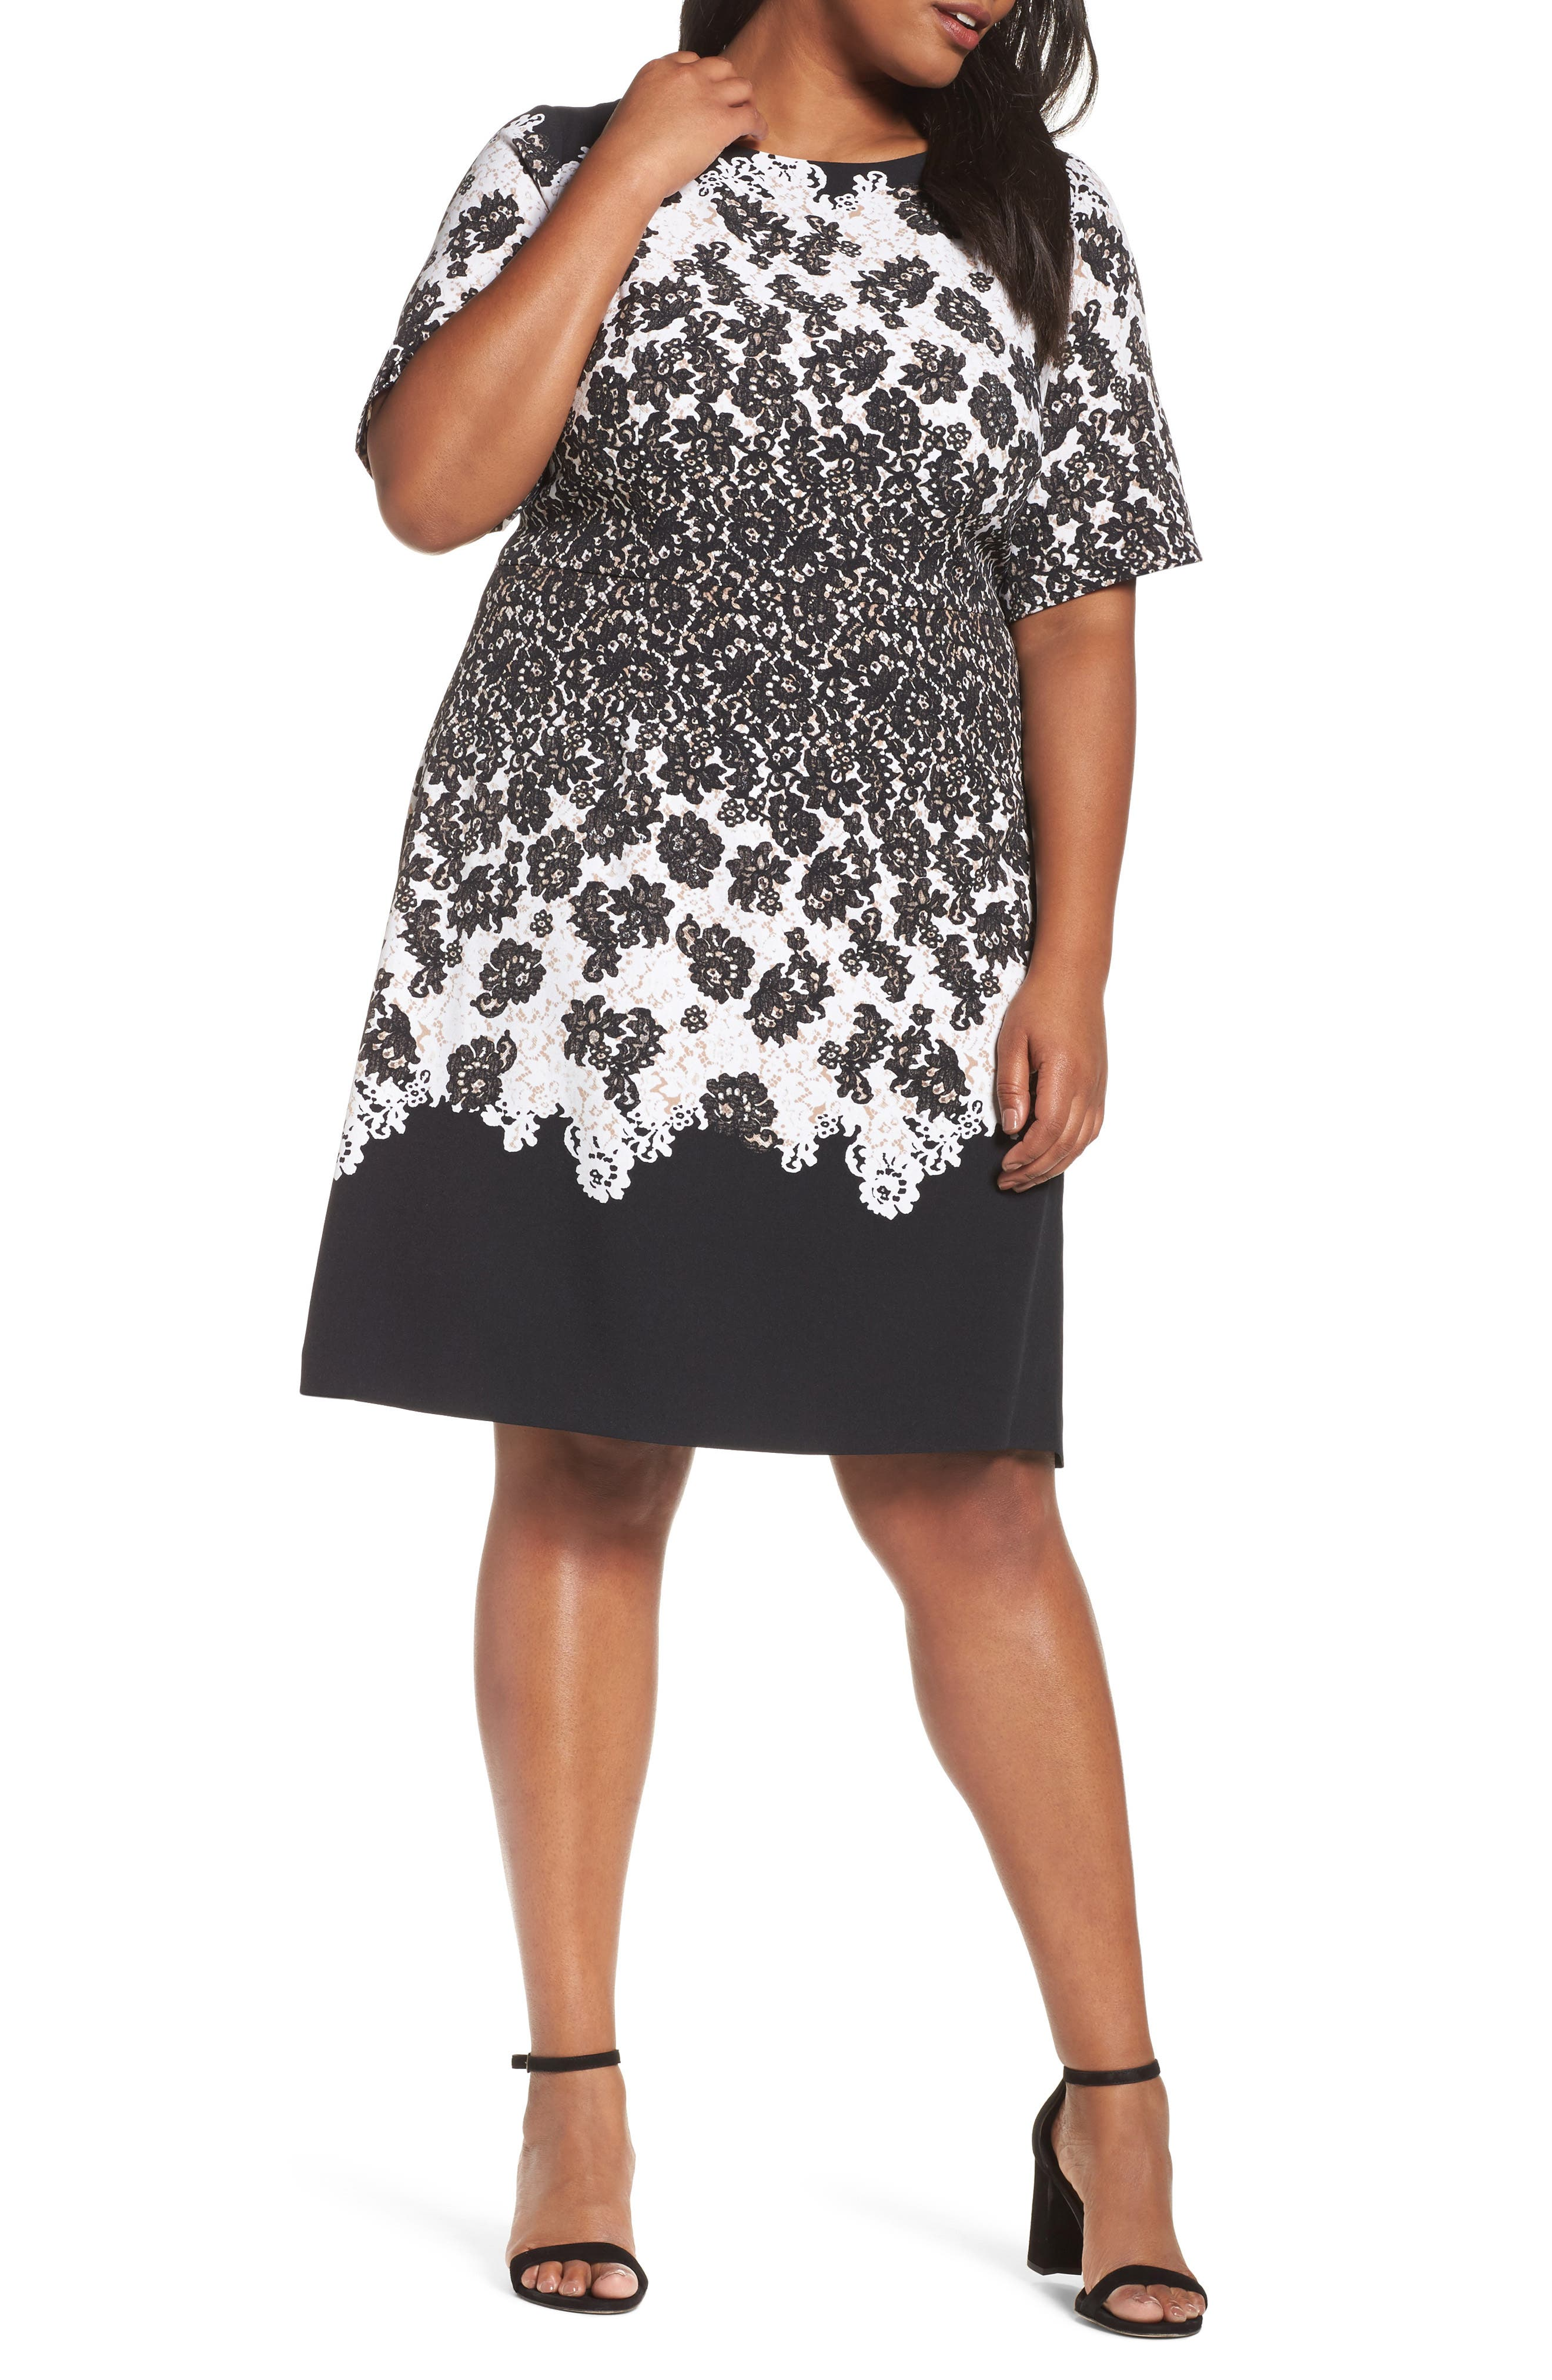 Adrianna Papell Lace Print Fit & Flare Dress (Plus Size)